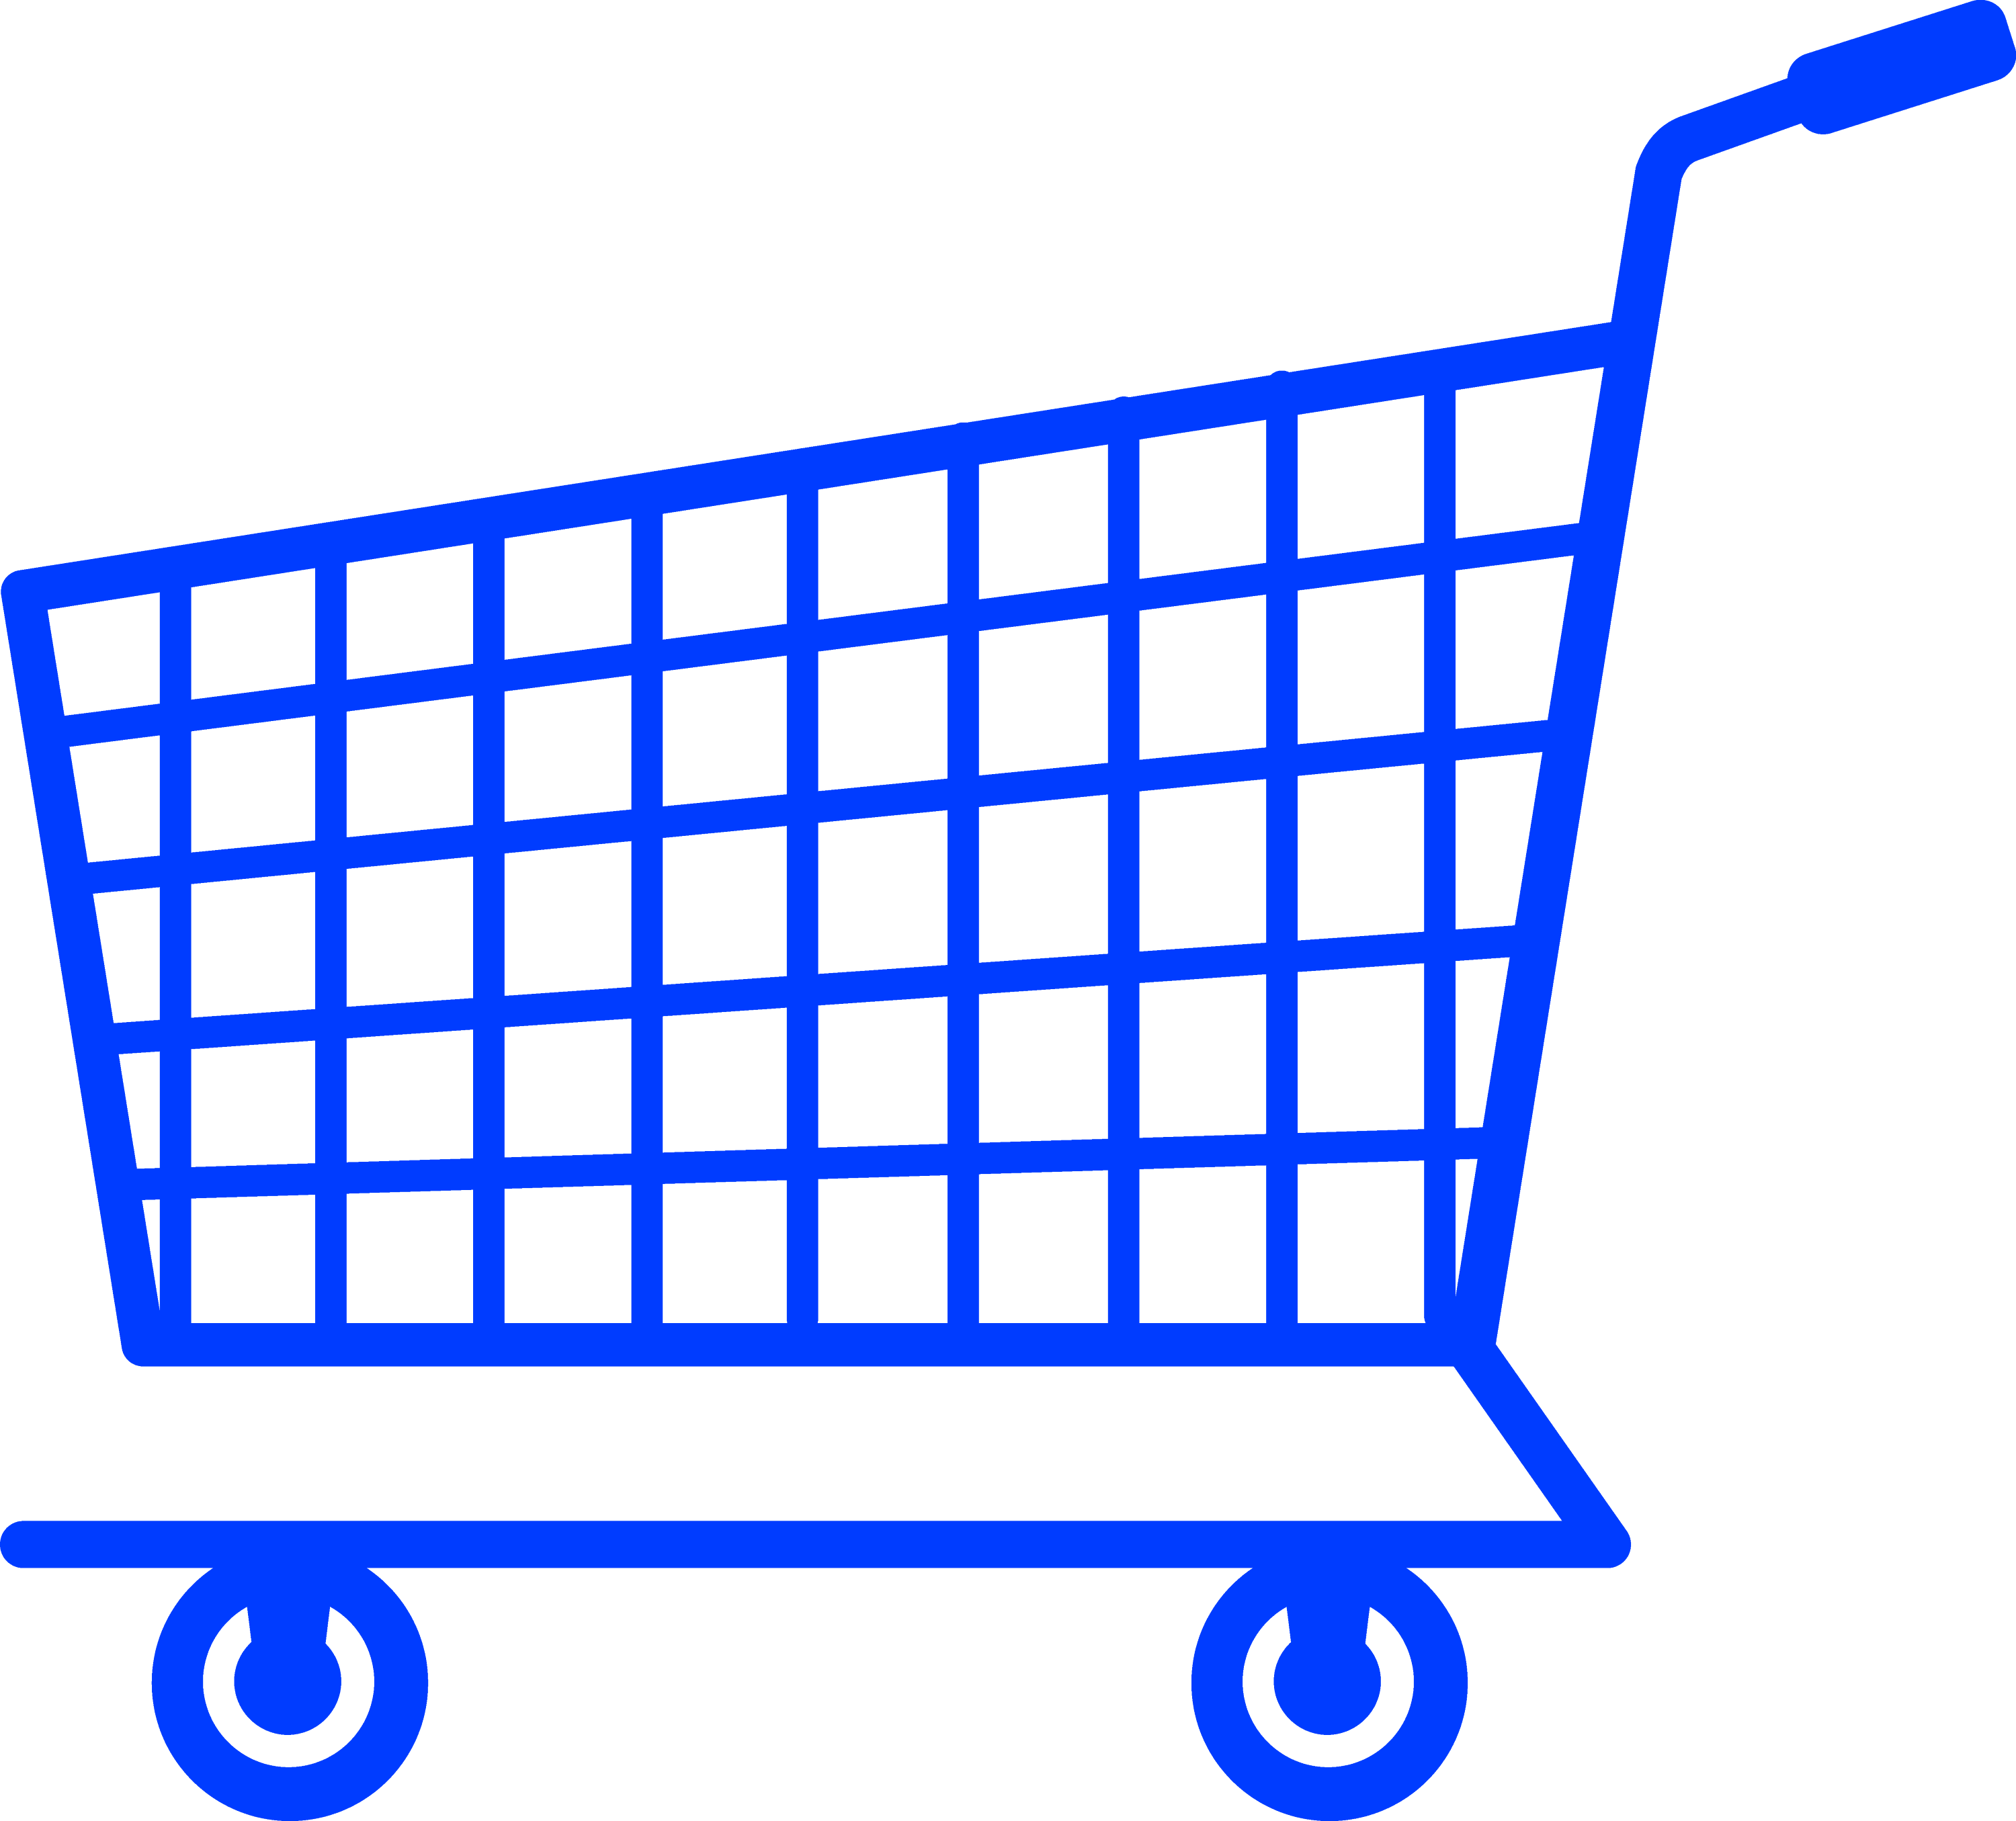 Shopping Cart Clipart,ShoppingTrolley Clipart,Shopping ...